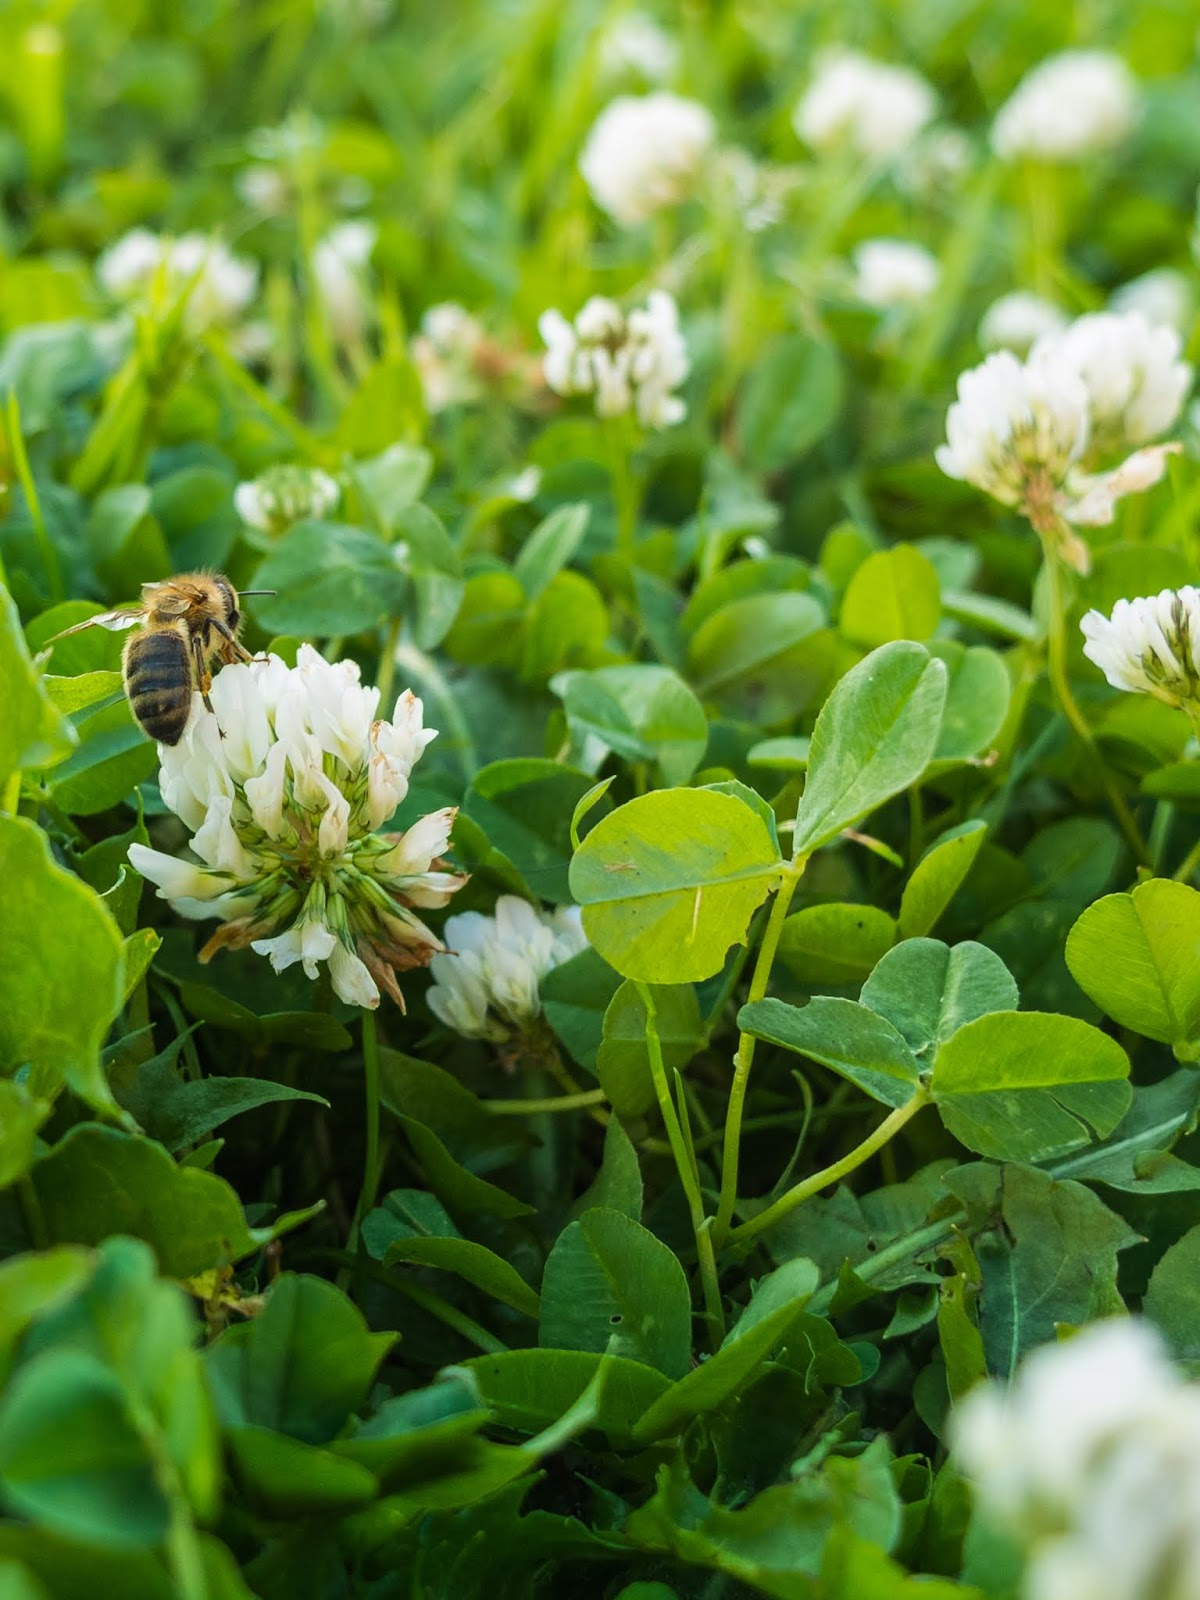 A honey bee collecting pollen from white clover in the lawn.